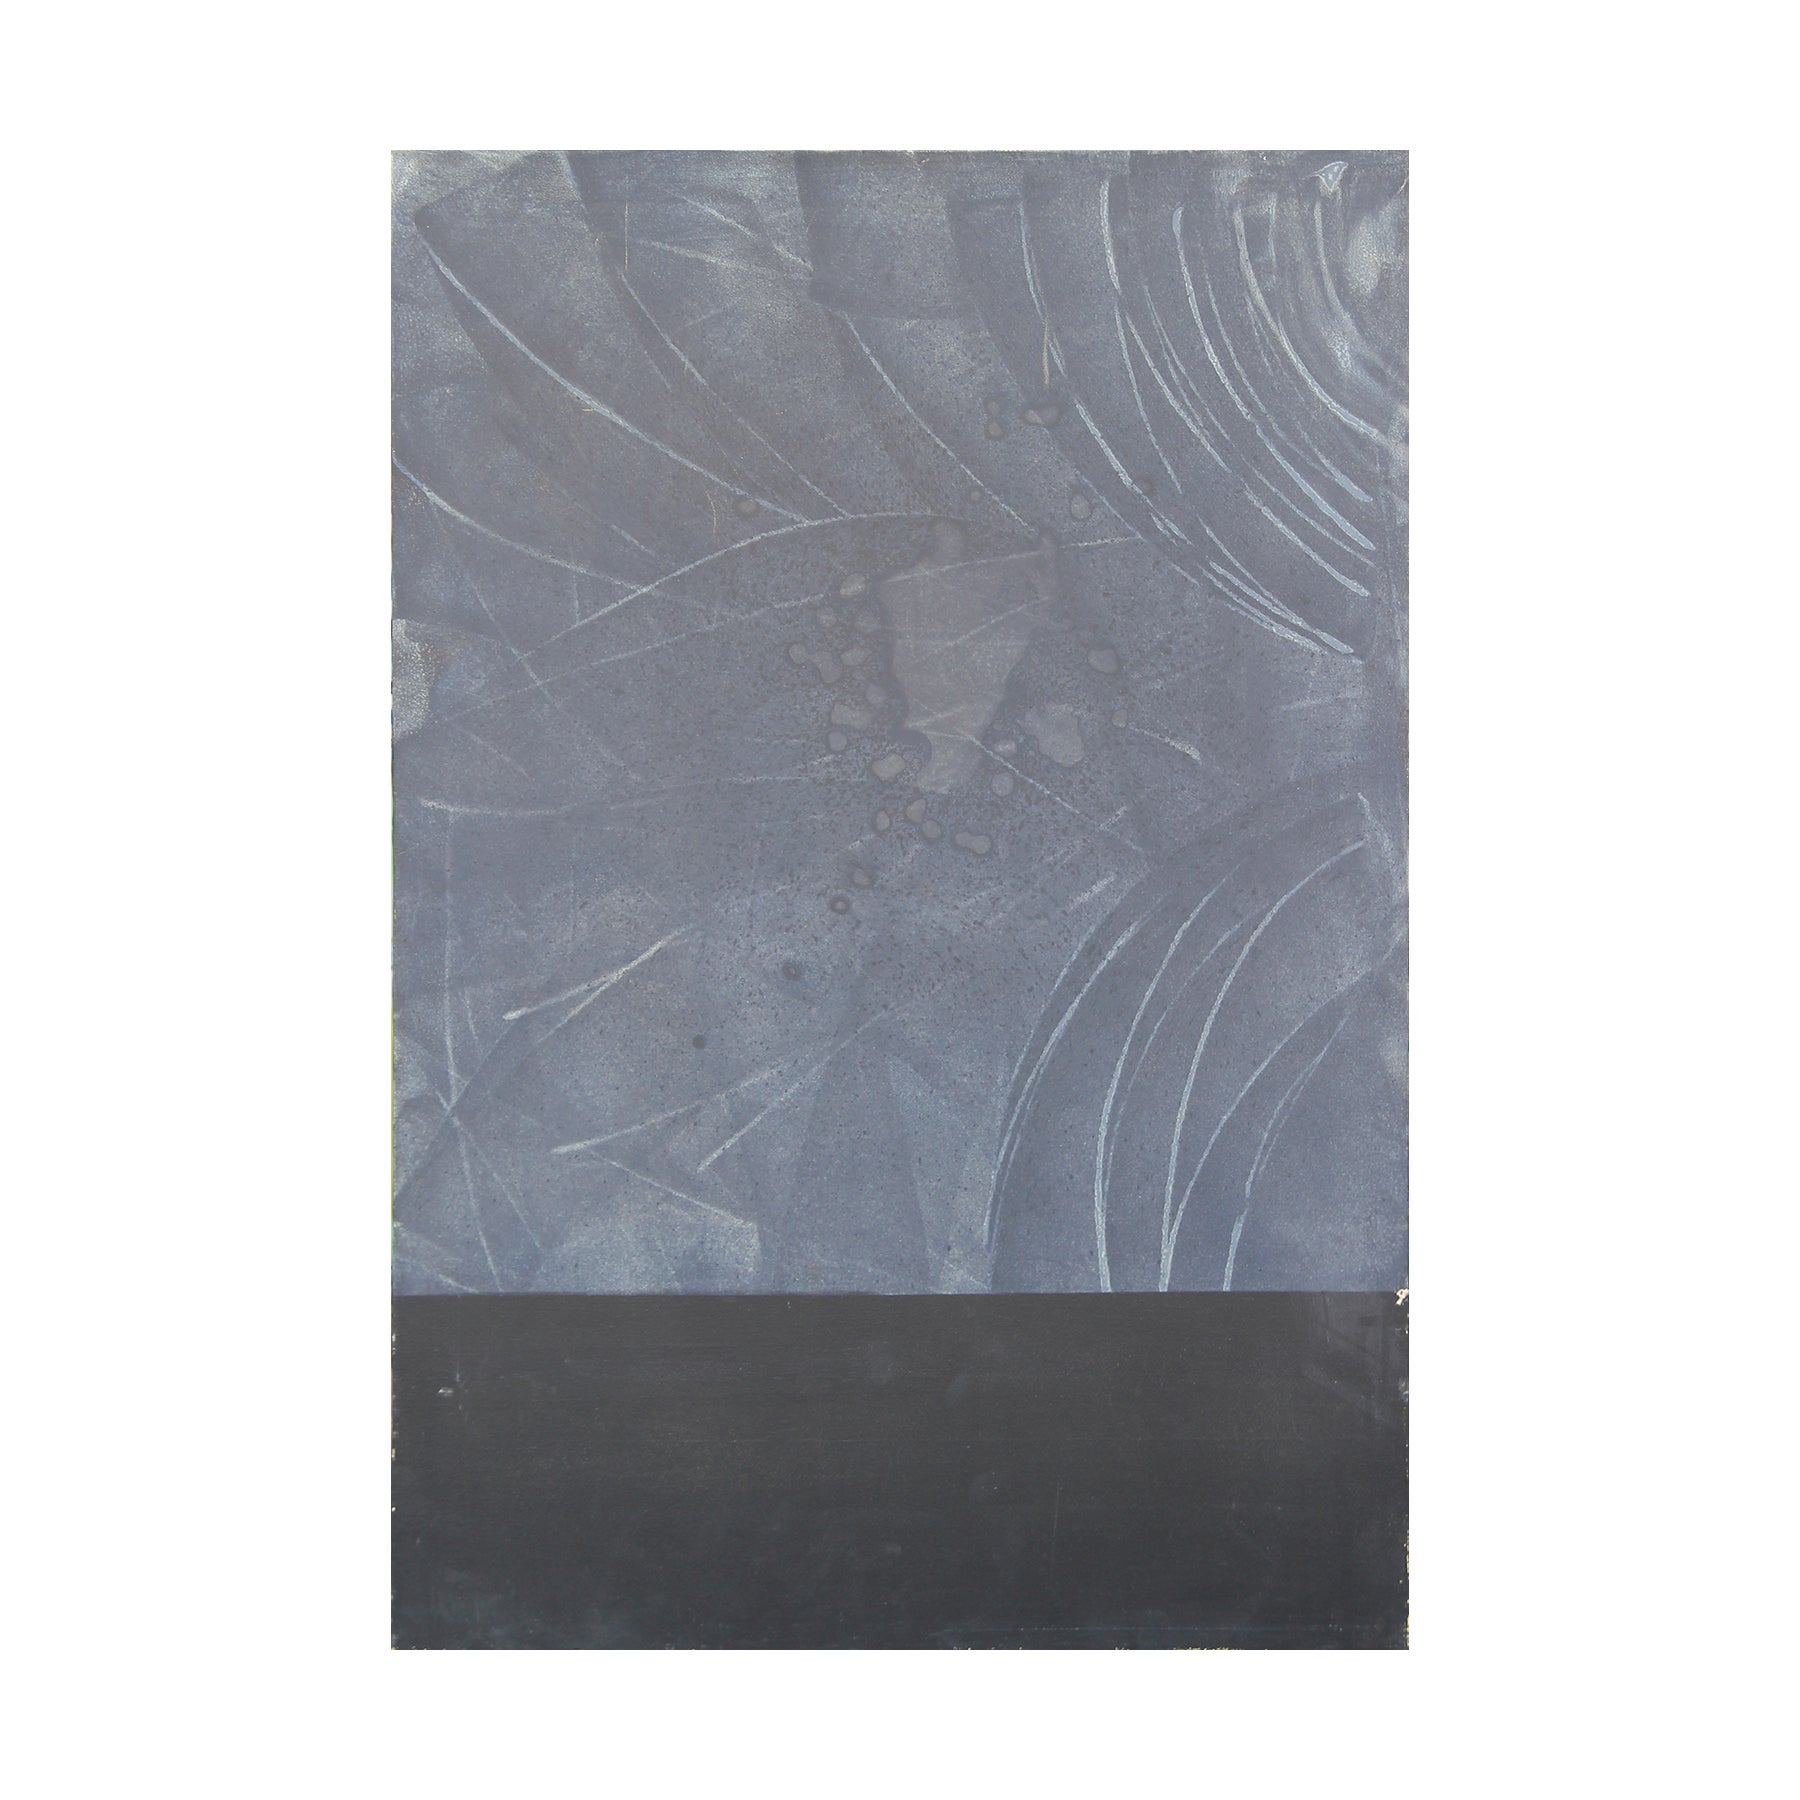 Black and Grey Abstract Color Field Modern Painting, In Style of Mark Rothko